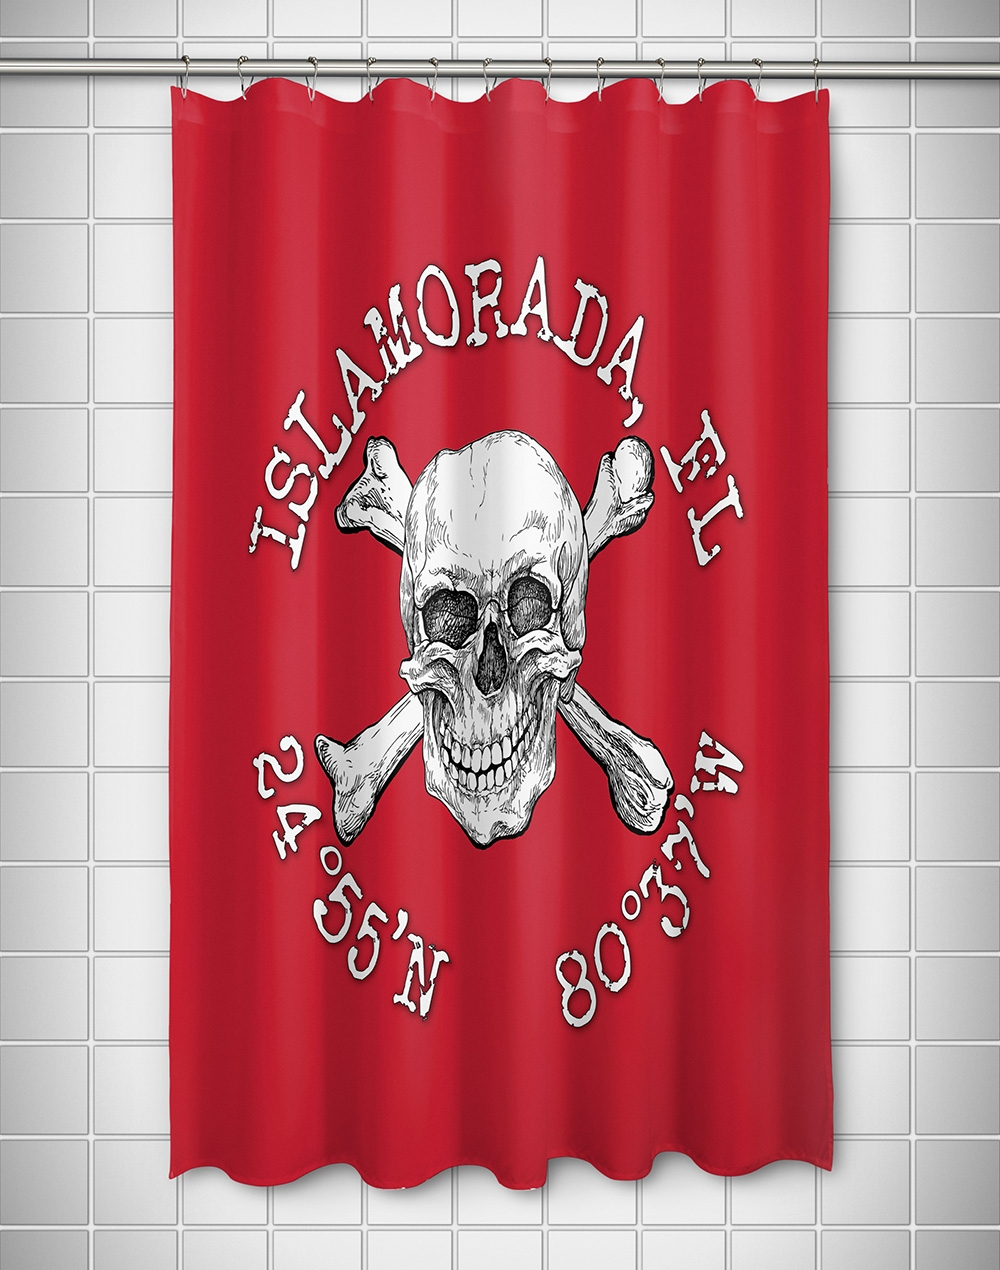 Skull And Crossbones Shower Curtain Rings Shower Curtain pertaining to sizing 1000 X 1270